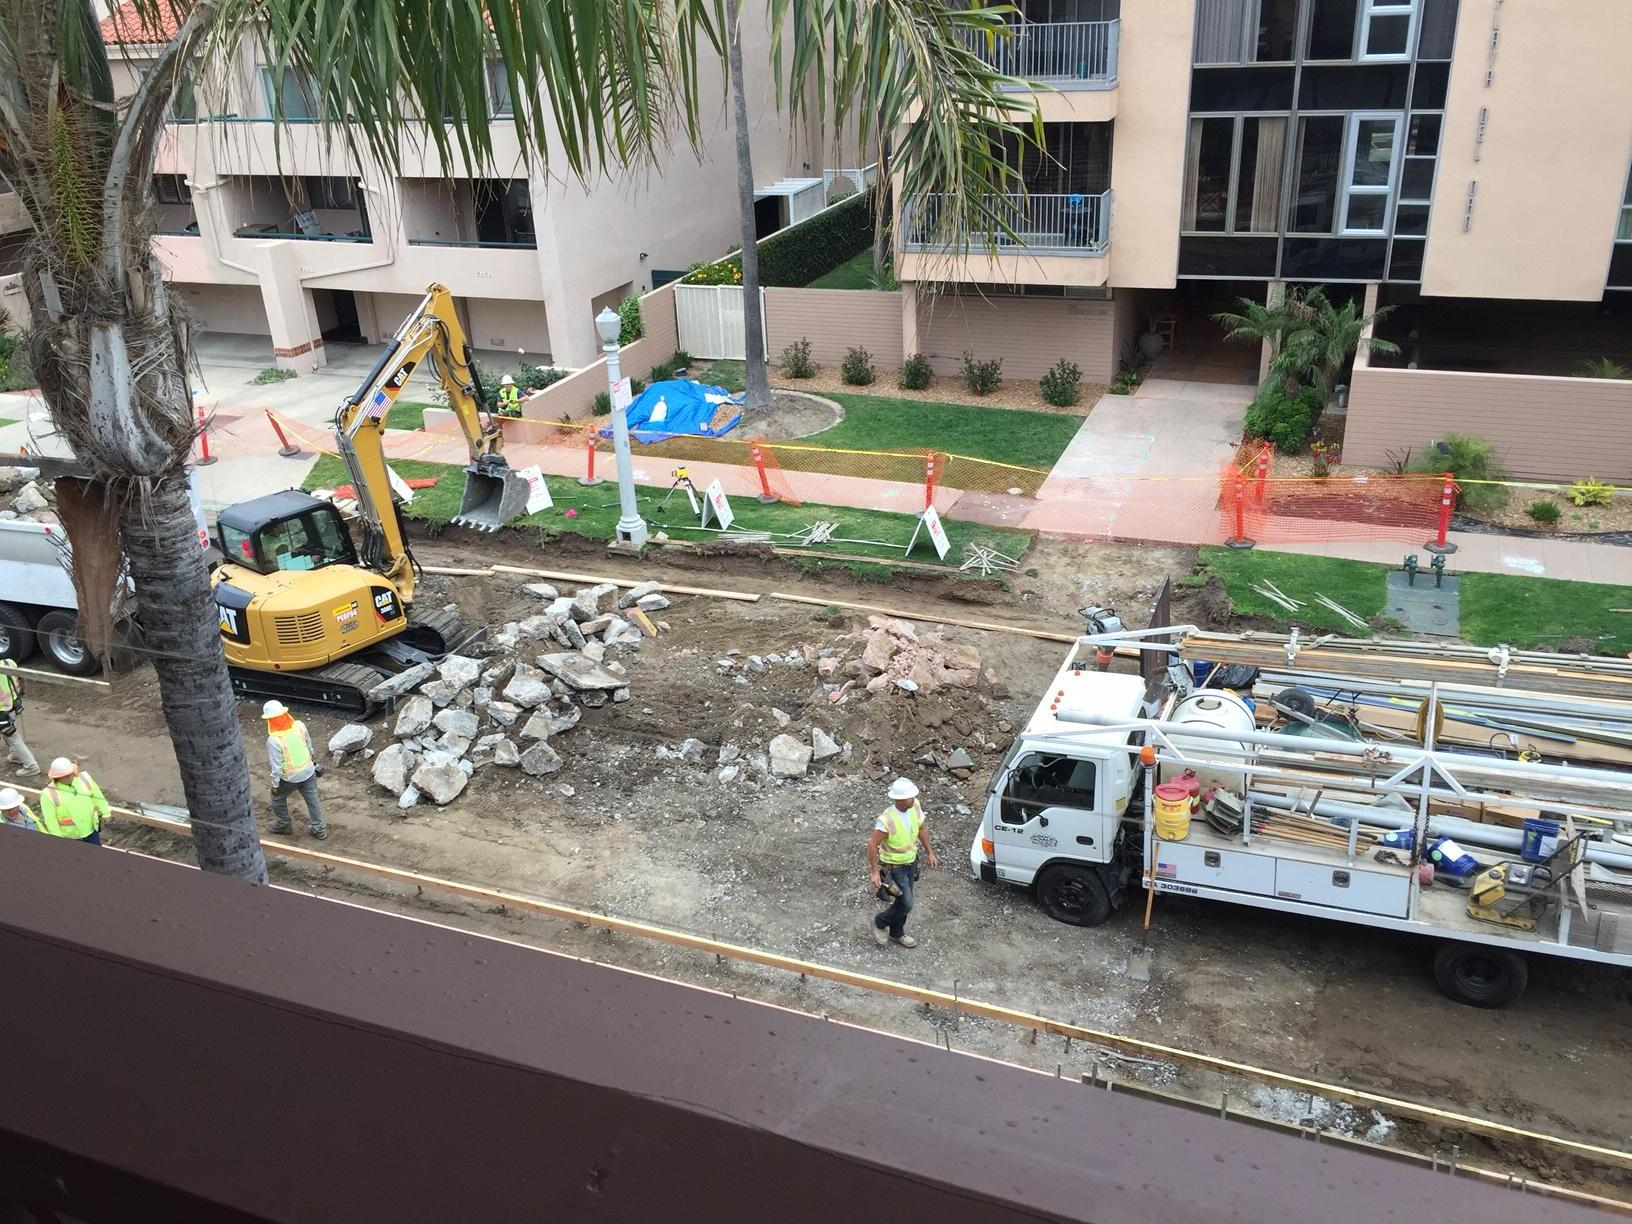 Construction starts at 7am, right outside your door.